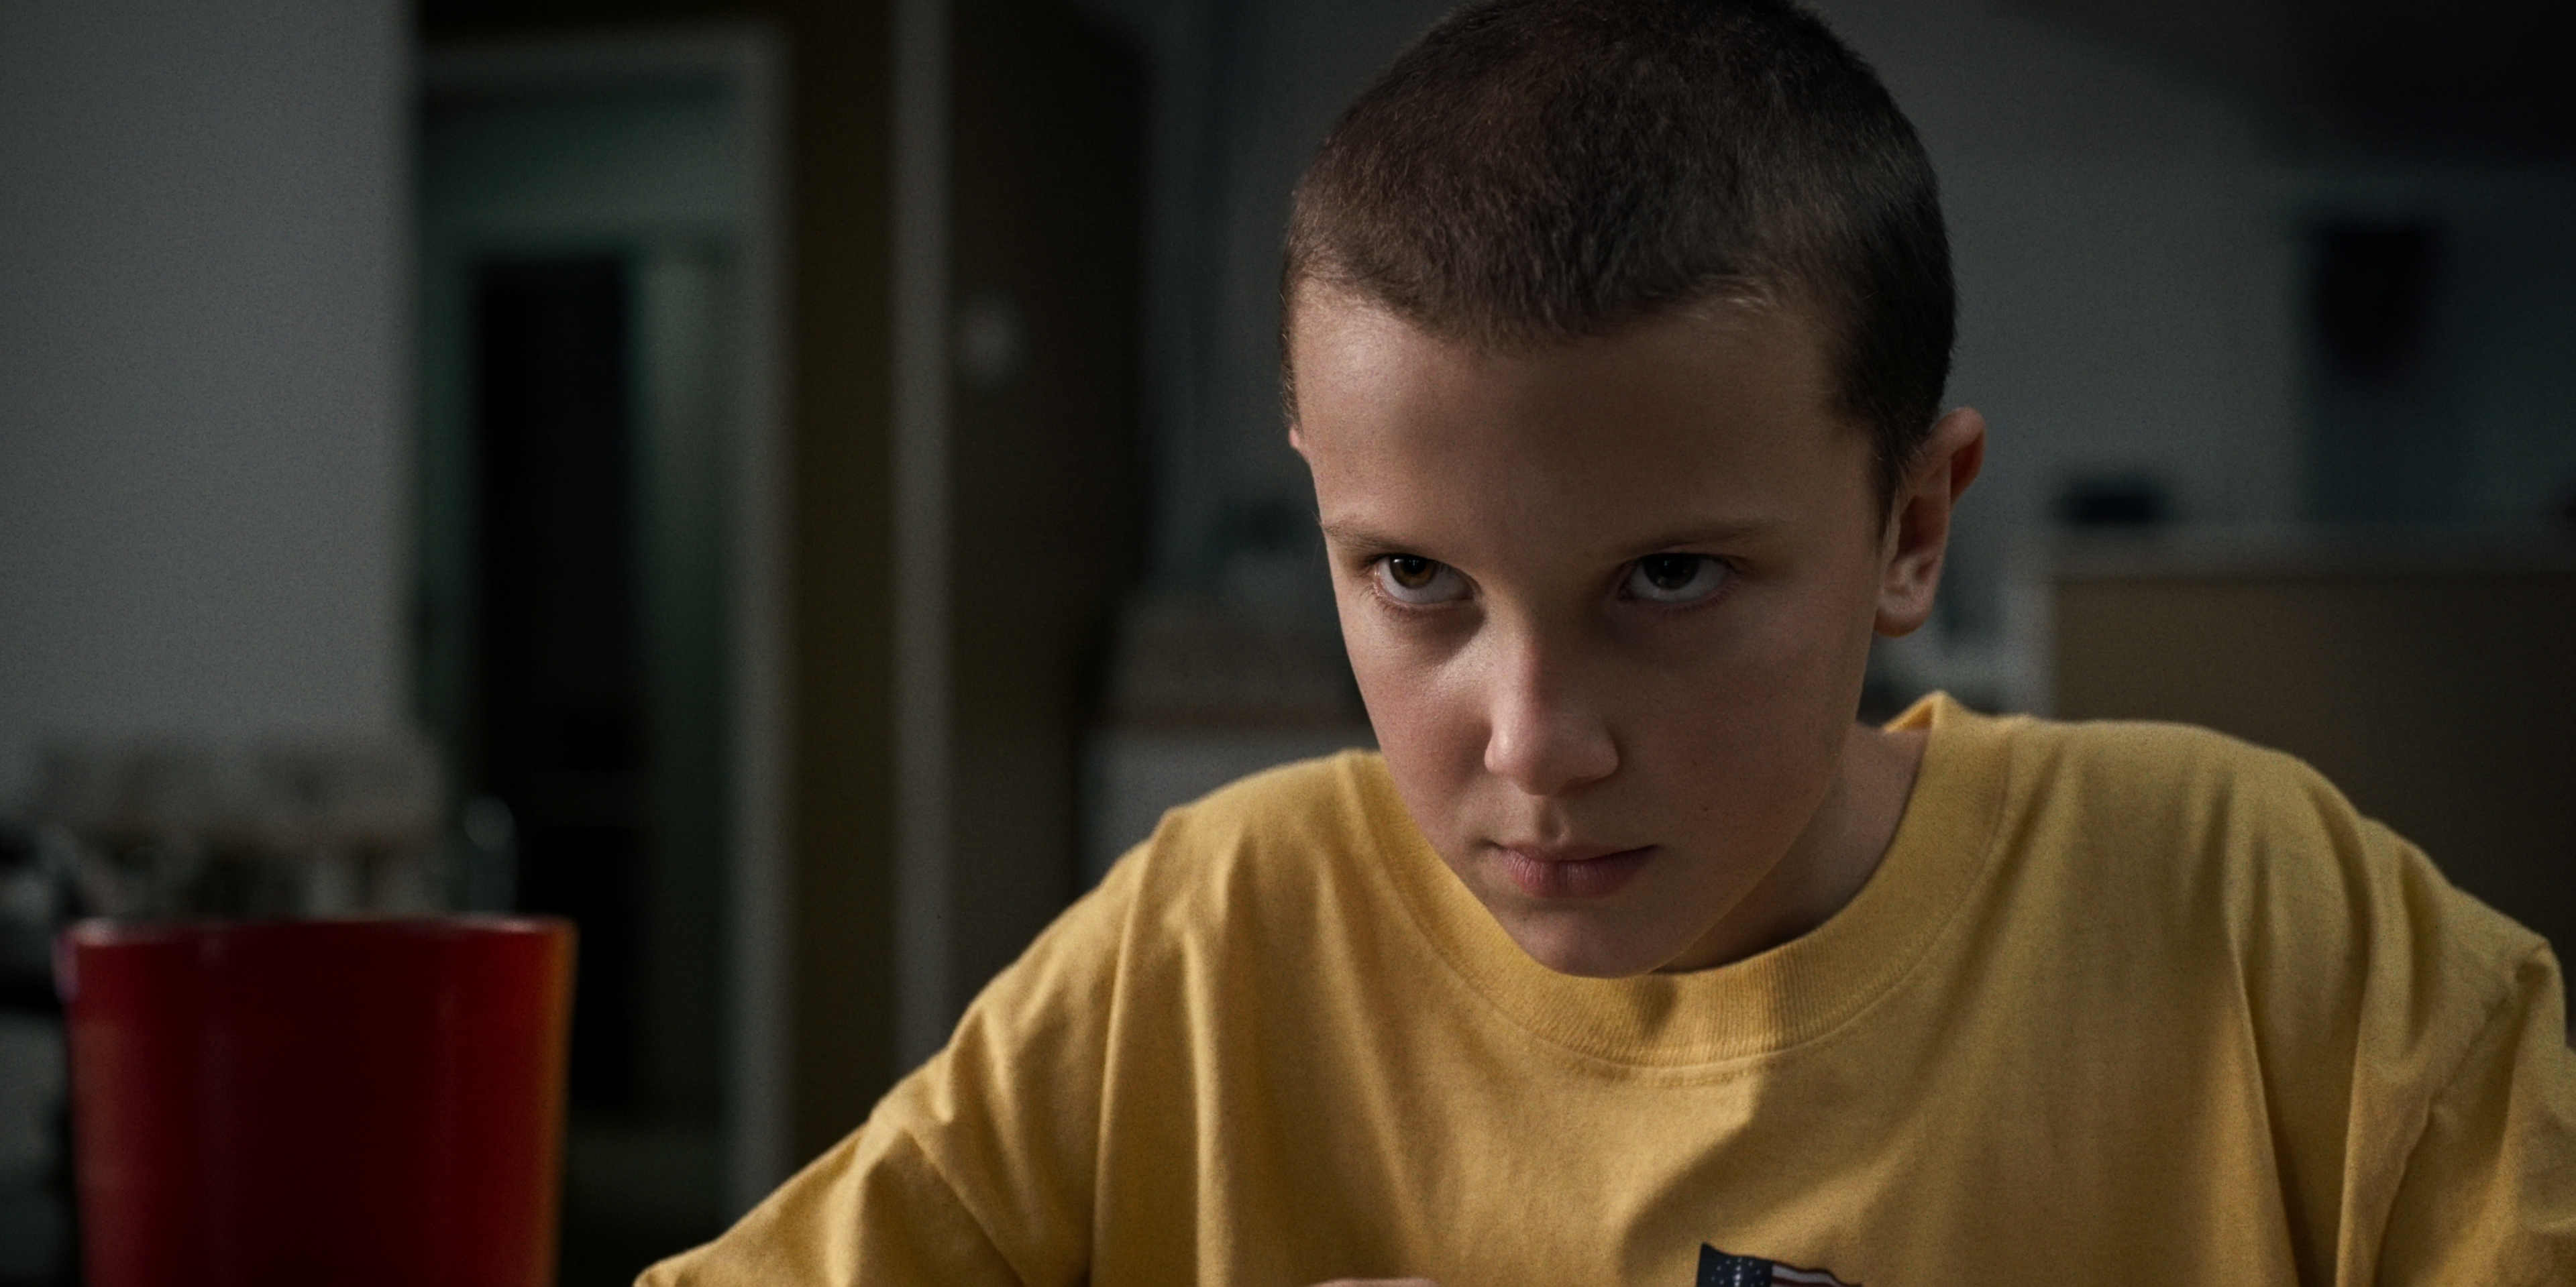 """This image released by Netflix shows Millie Bobby Brown in a scene from, """"Stranger Things."""" The series was nominated for a Golden Globe award for best TV drama on Monday, Dec. 12, 2016. The 74th Golden Globe Awards ceremony will be broadcast on Jan. 8, on NBC. (Netflix via AP) 